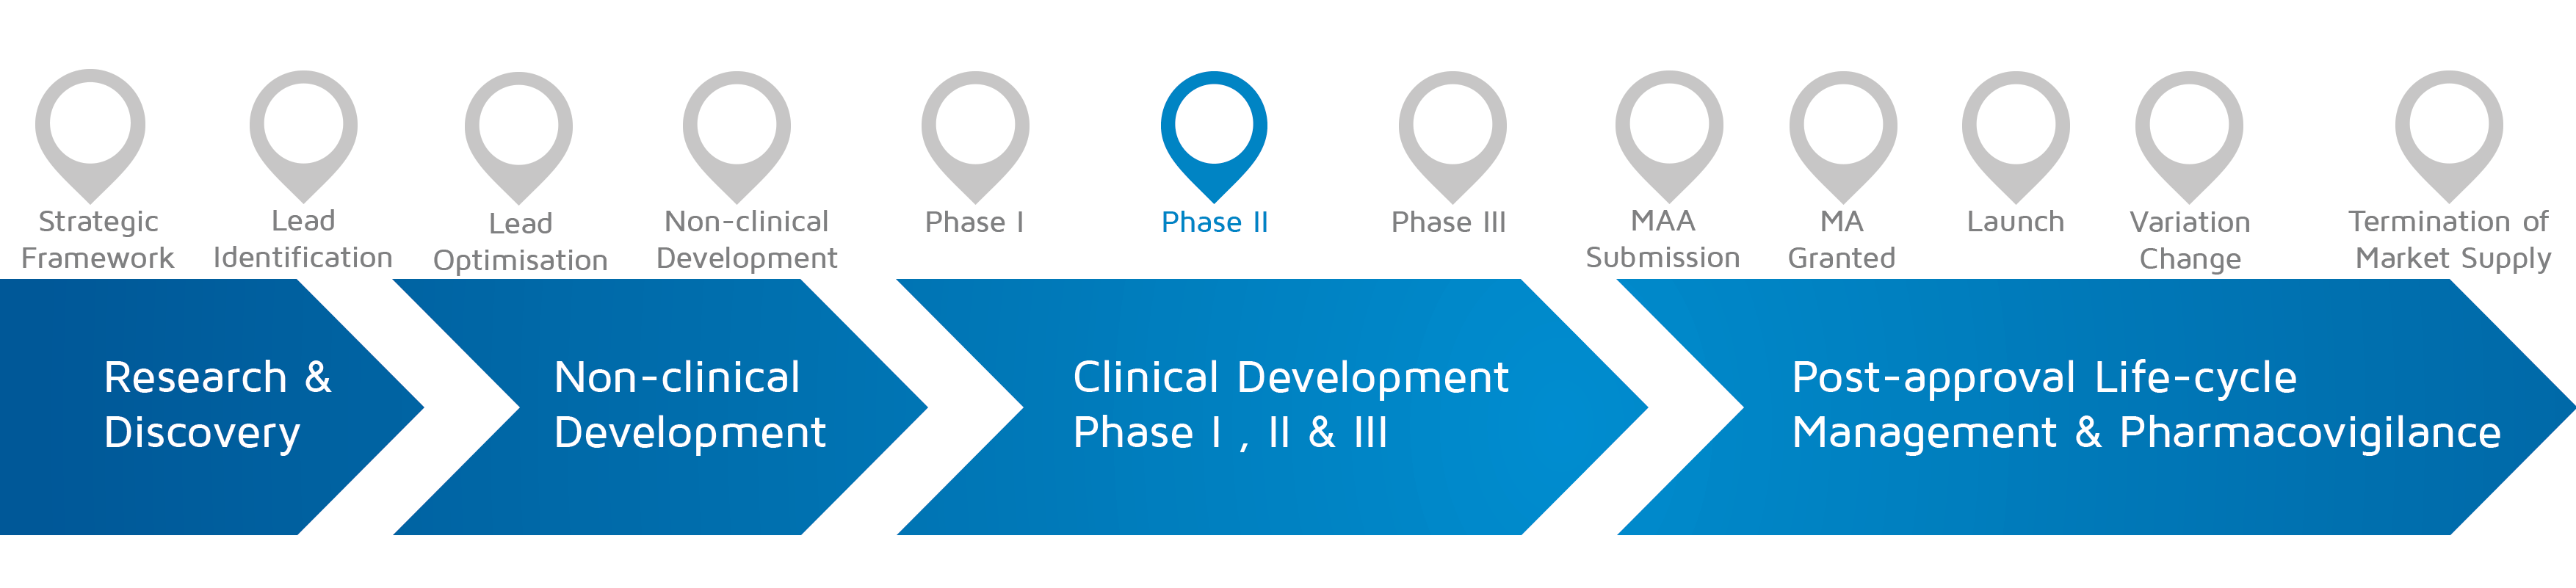 A visual representation of in which phase of medicines research and development process an activity takes place with Phase II highlighted.